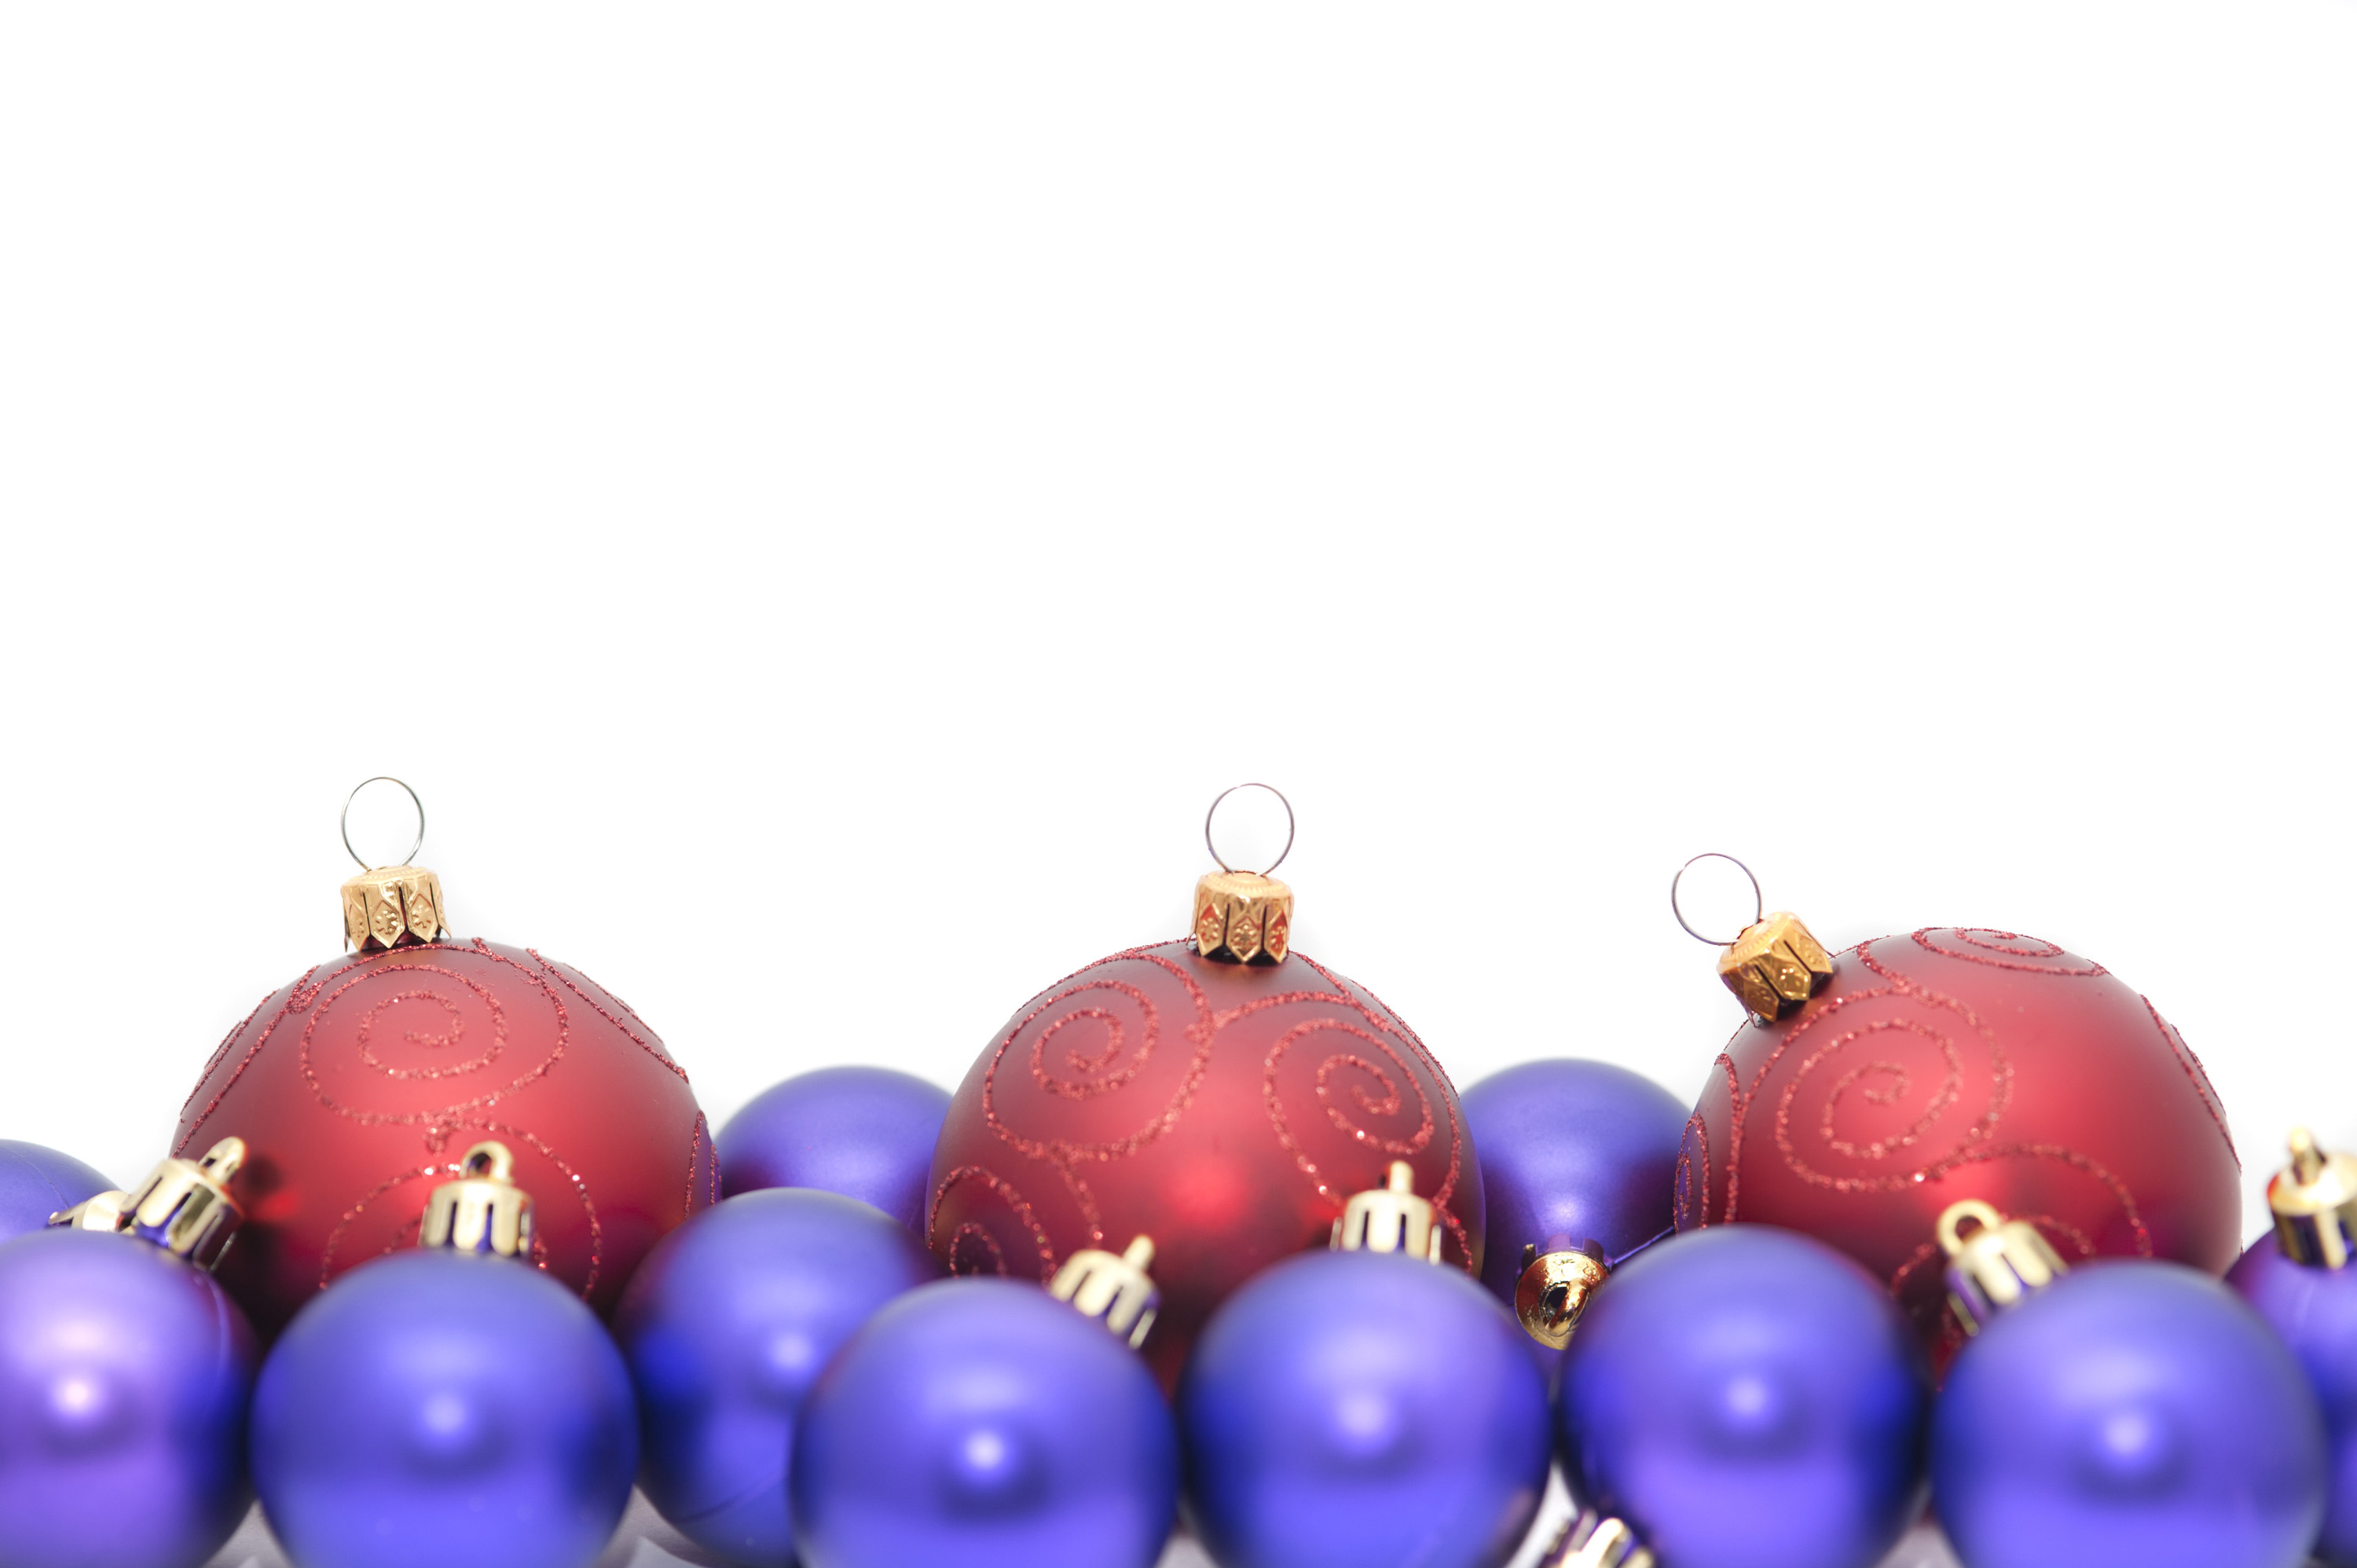 Colourful Christmas bauble border with red and purple balls arranged along the lower edge of the frame with copyspace above